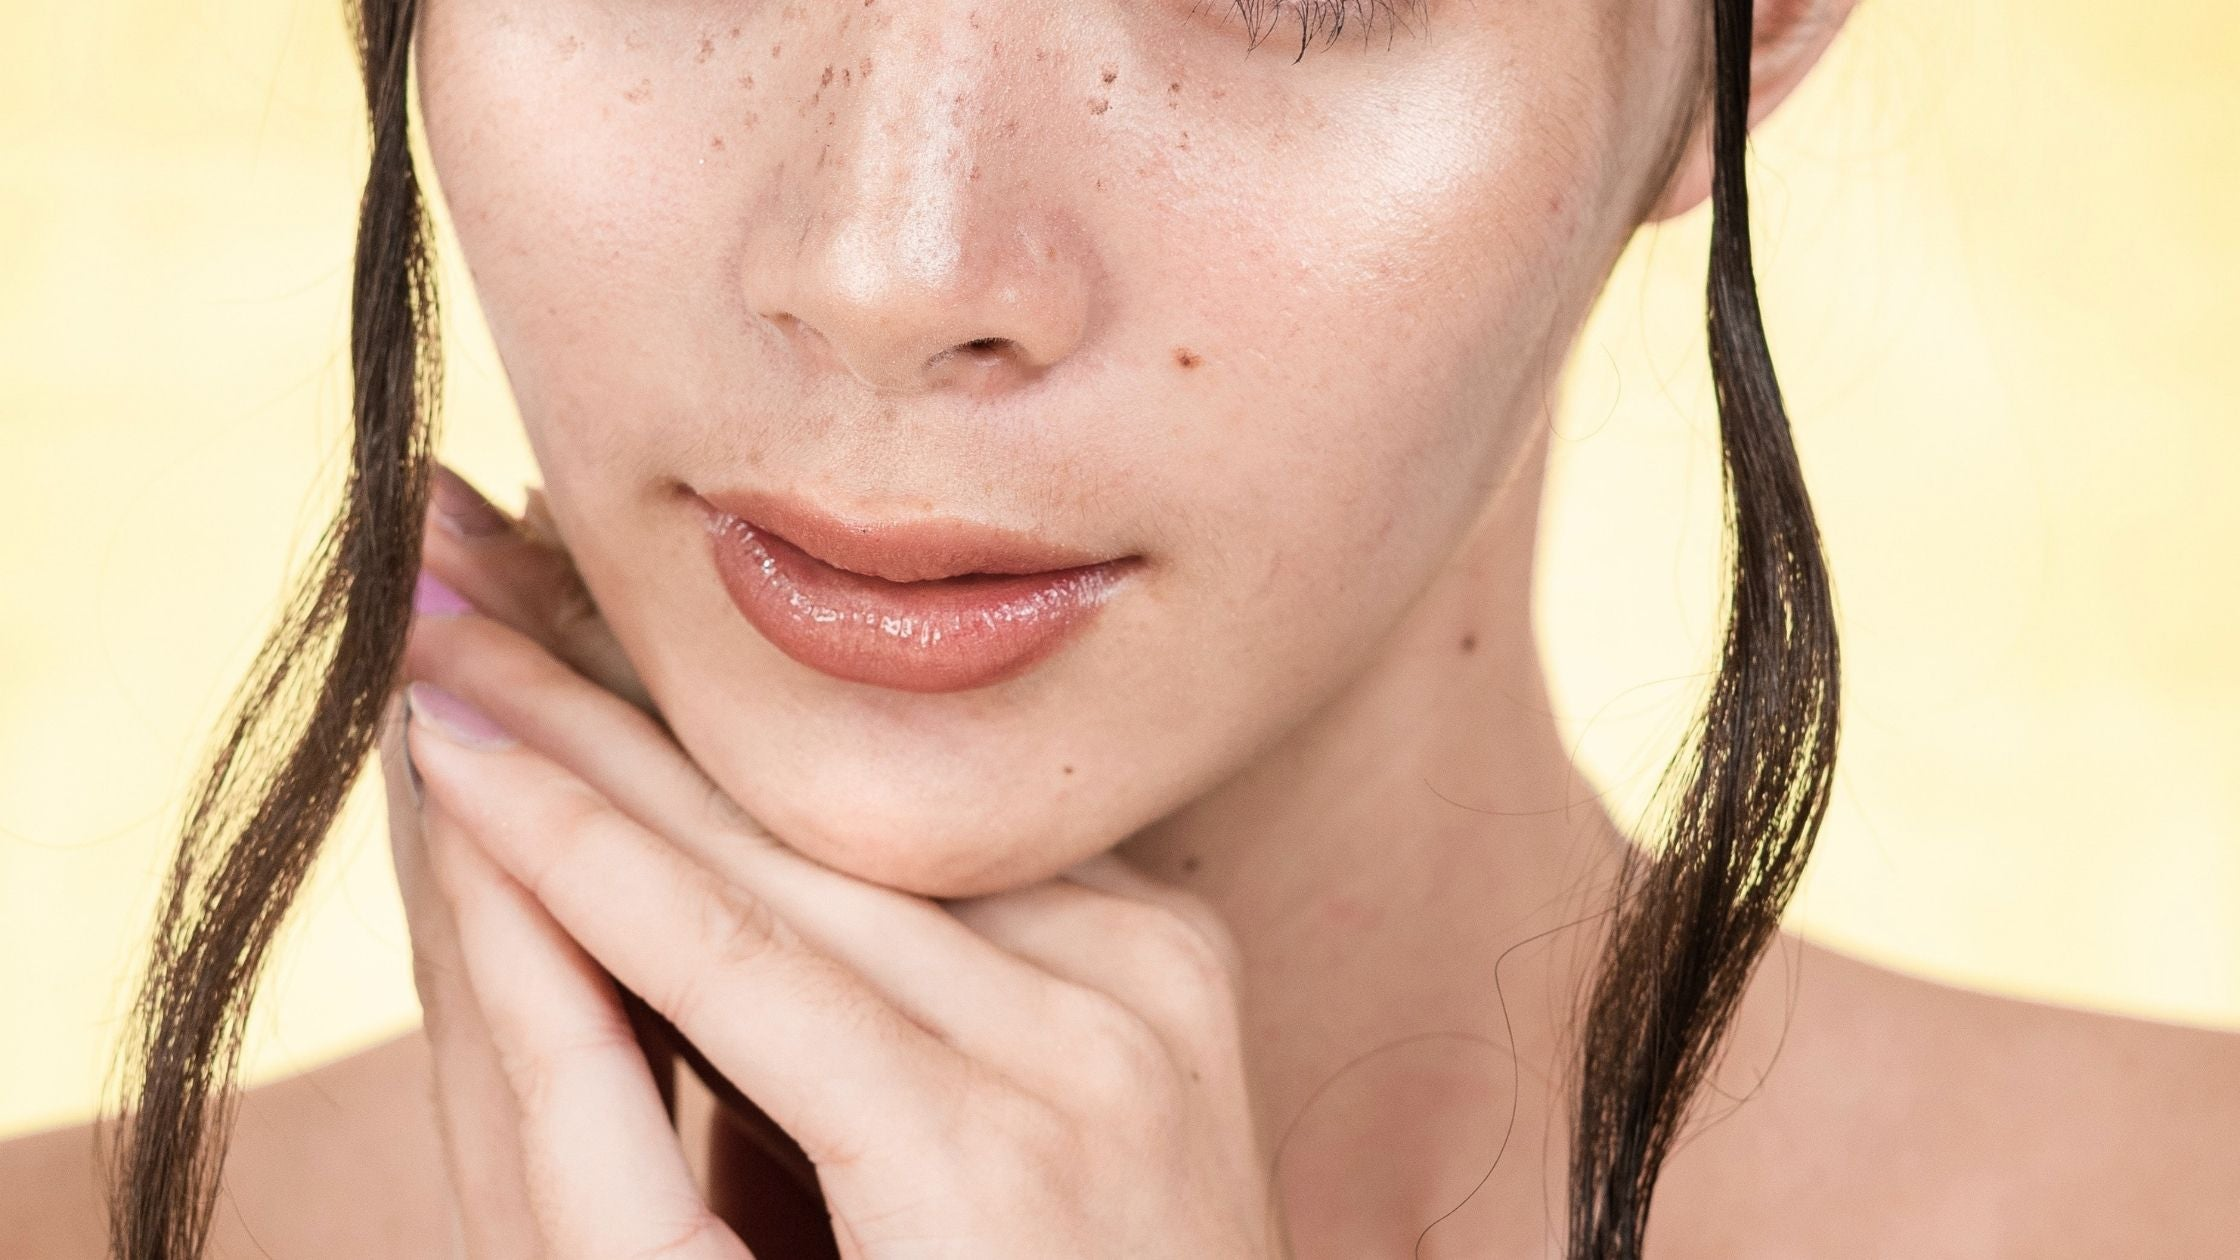 Dark spots on your face